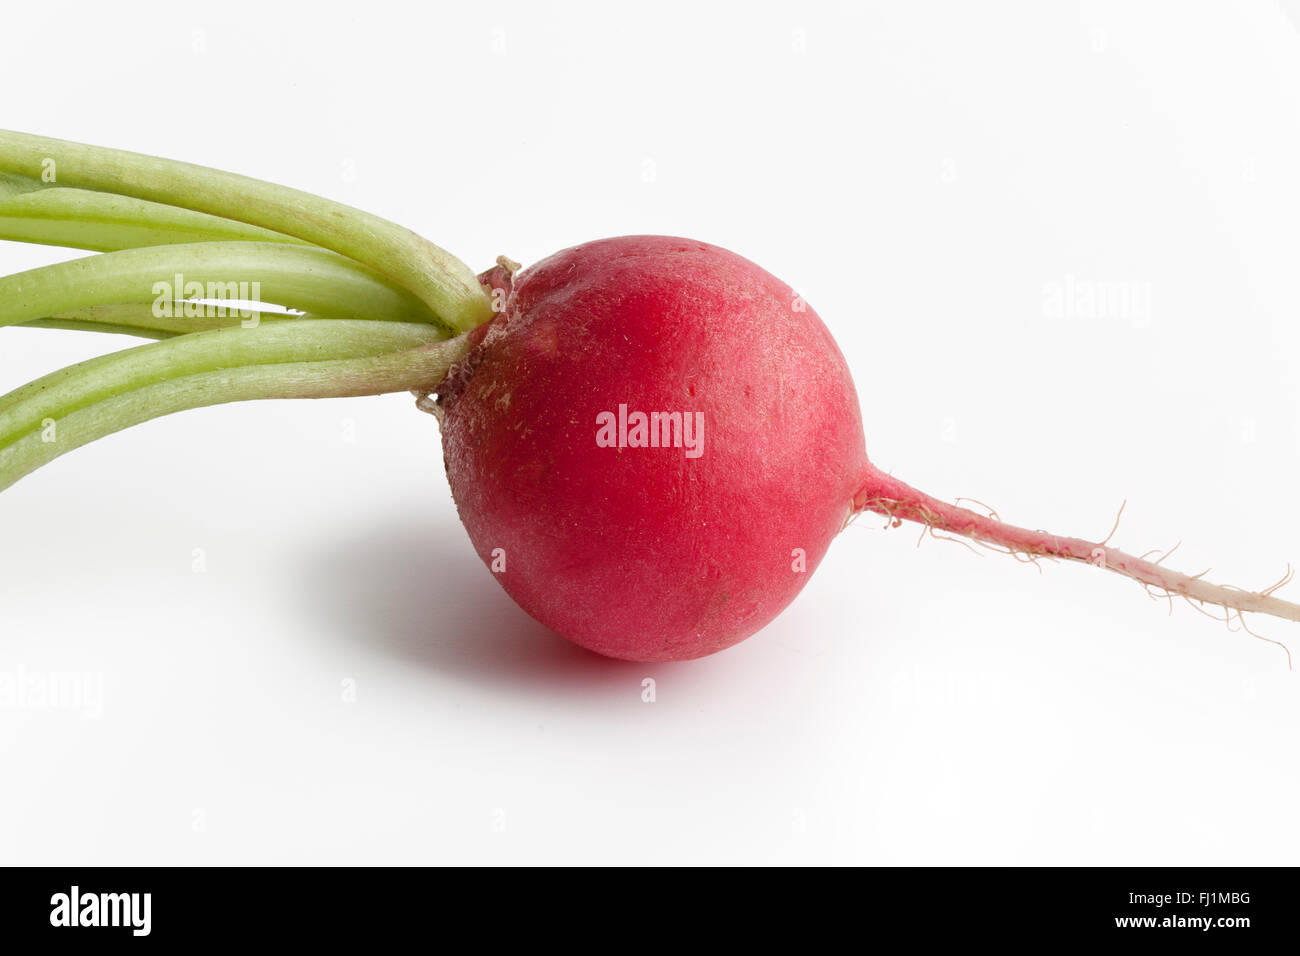 Single fresh red radish, Raphanus sativus on white background Stock Photo